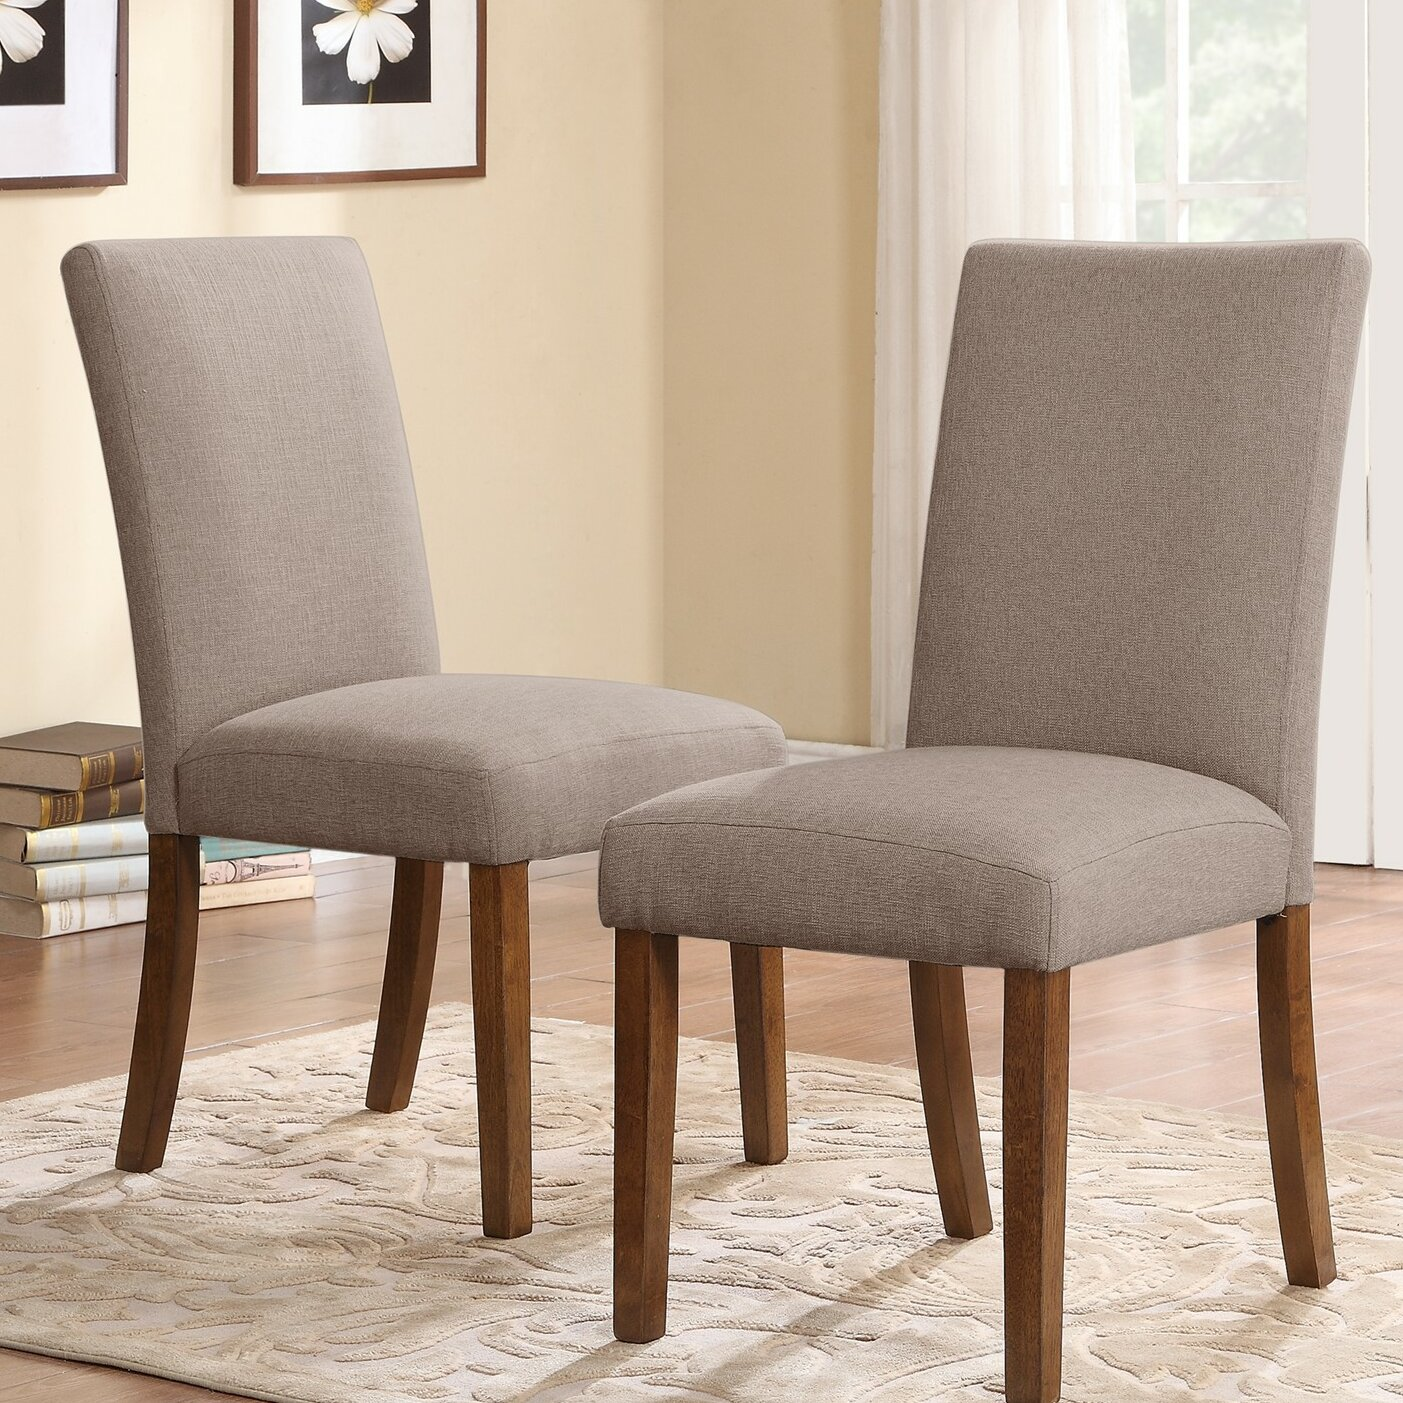 Dorel Living Parsons Chair Reviews